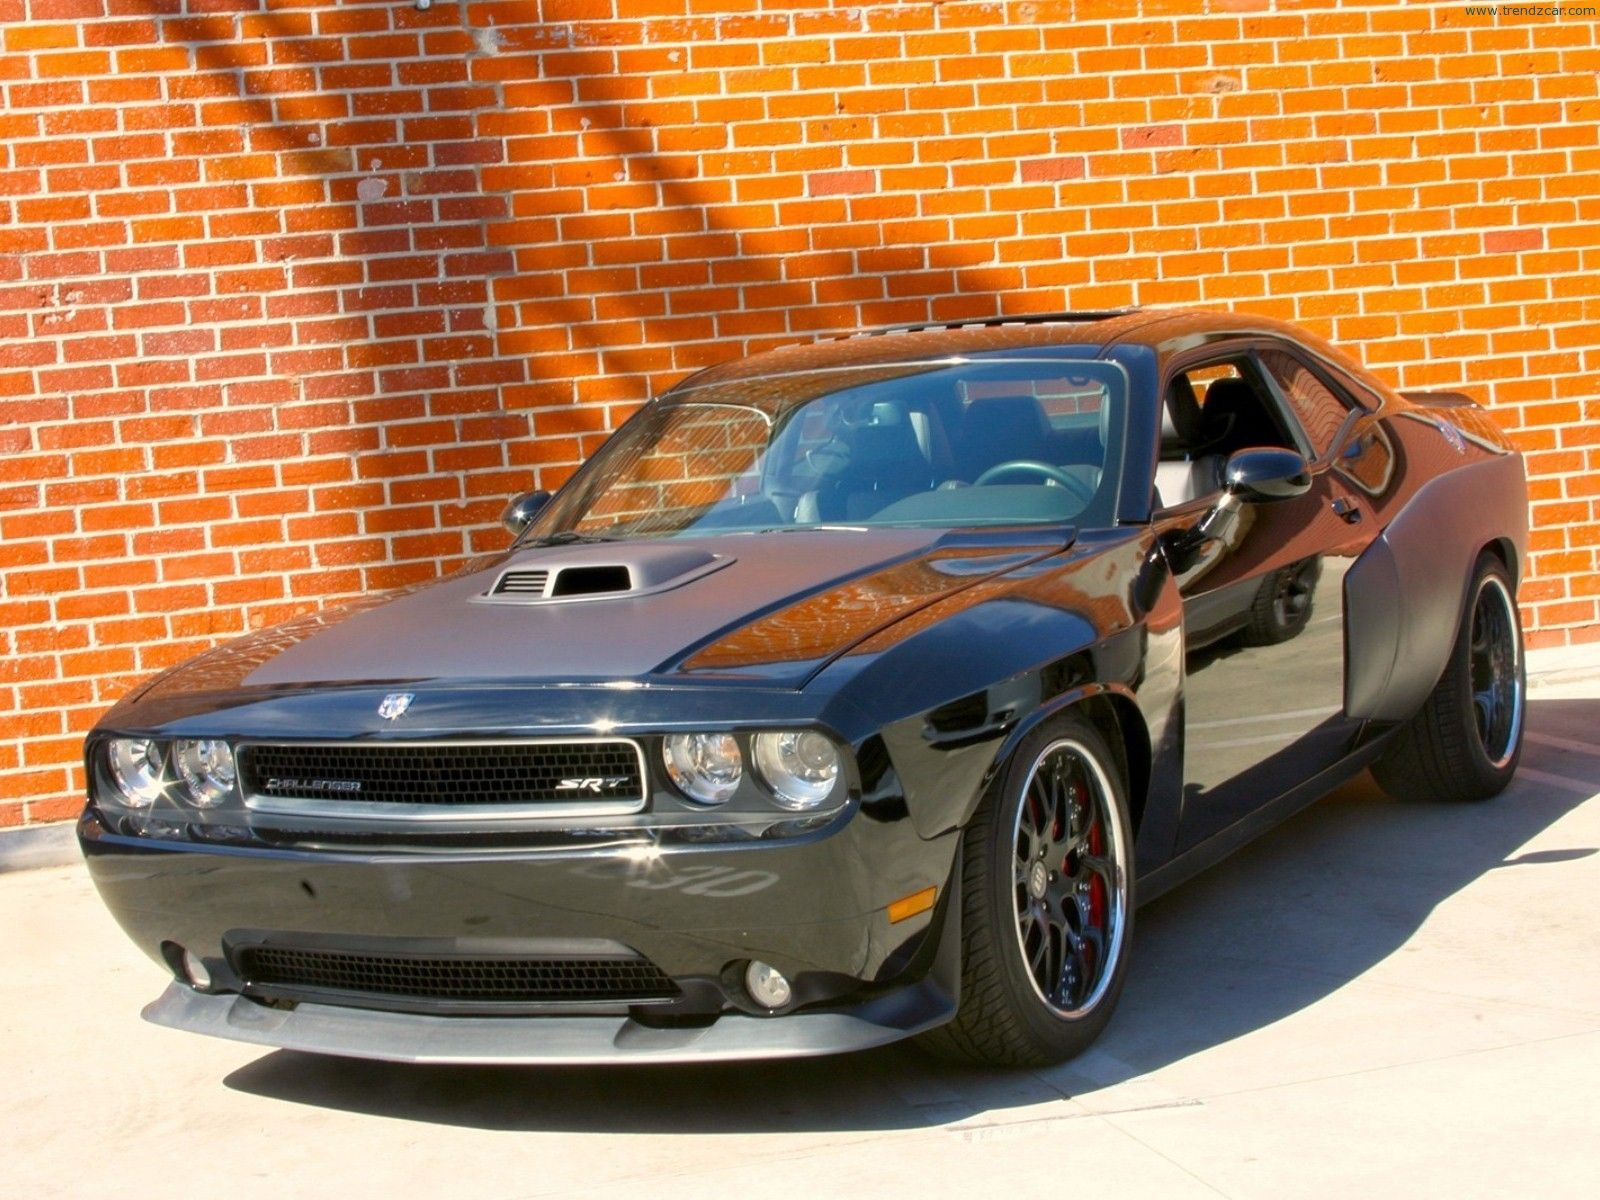 2012 Dodge Challenger SRT8 Front Angle U2013 Fast U0026 Furious 6 Car #Cars  Motorcycles